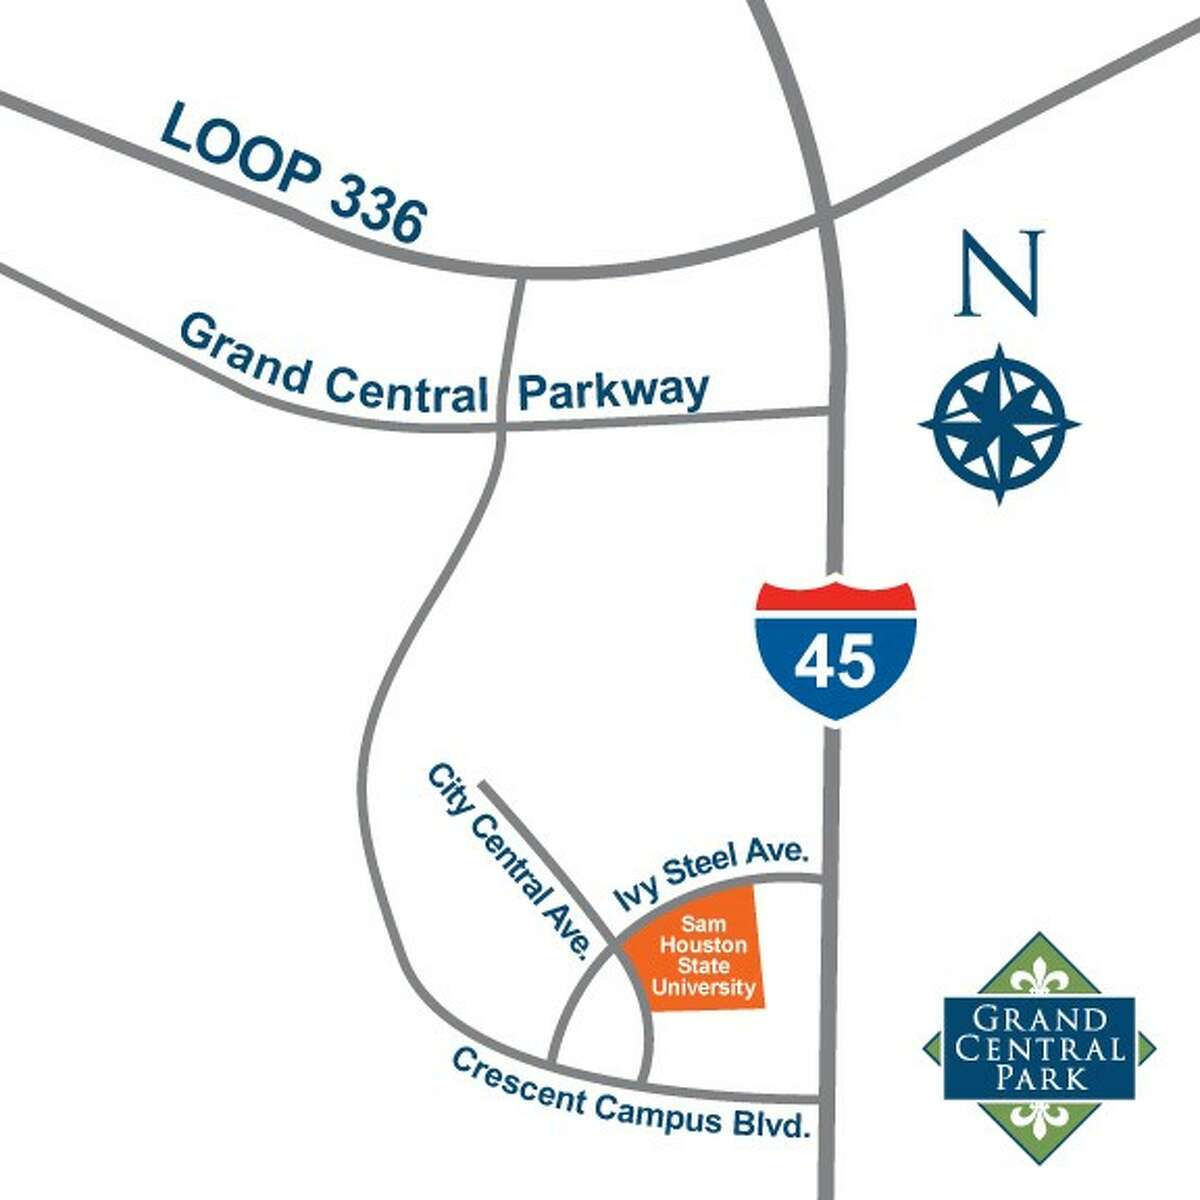 Location of Sam Houston State University's proposed College of Osteopathic Medicine in Conroe.